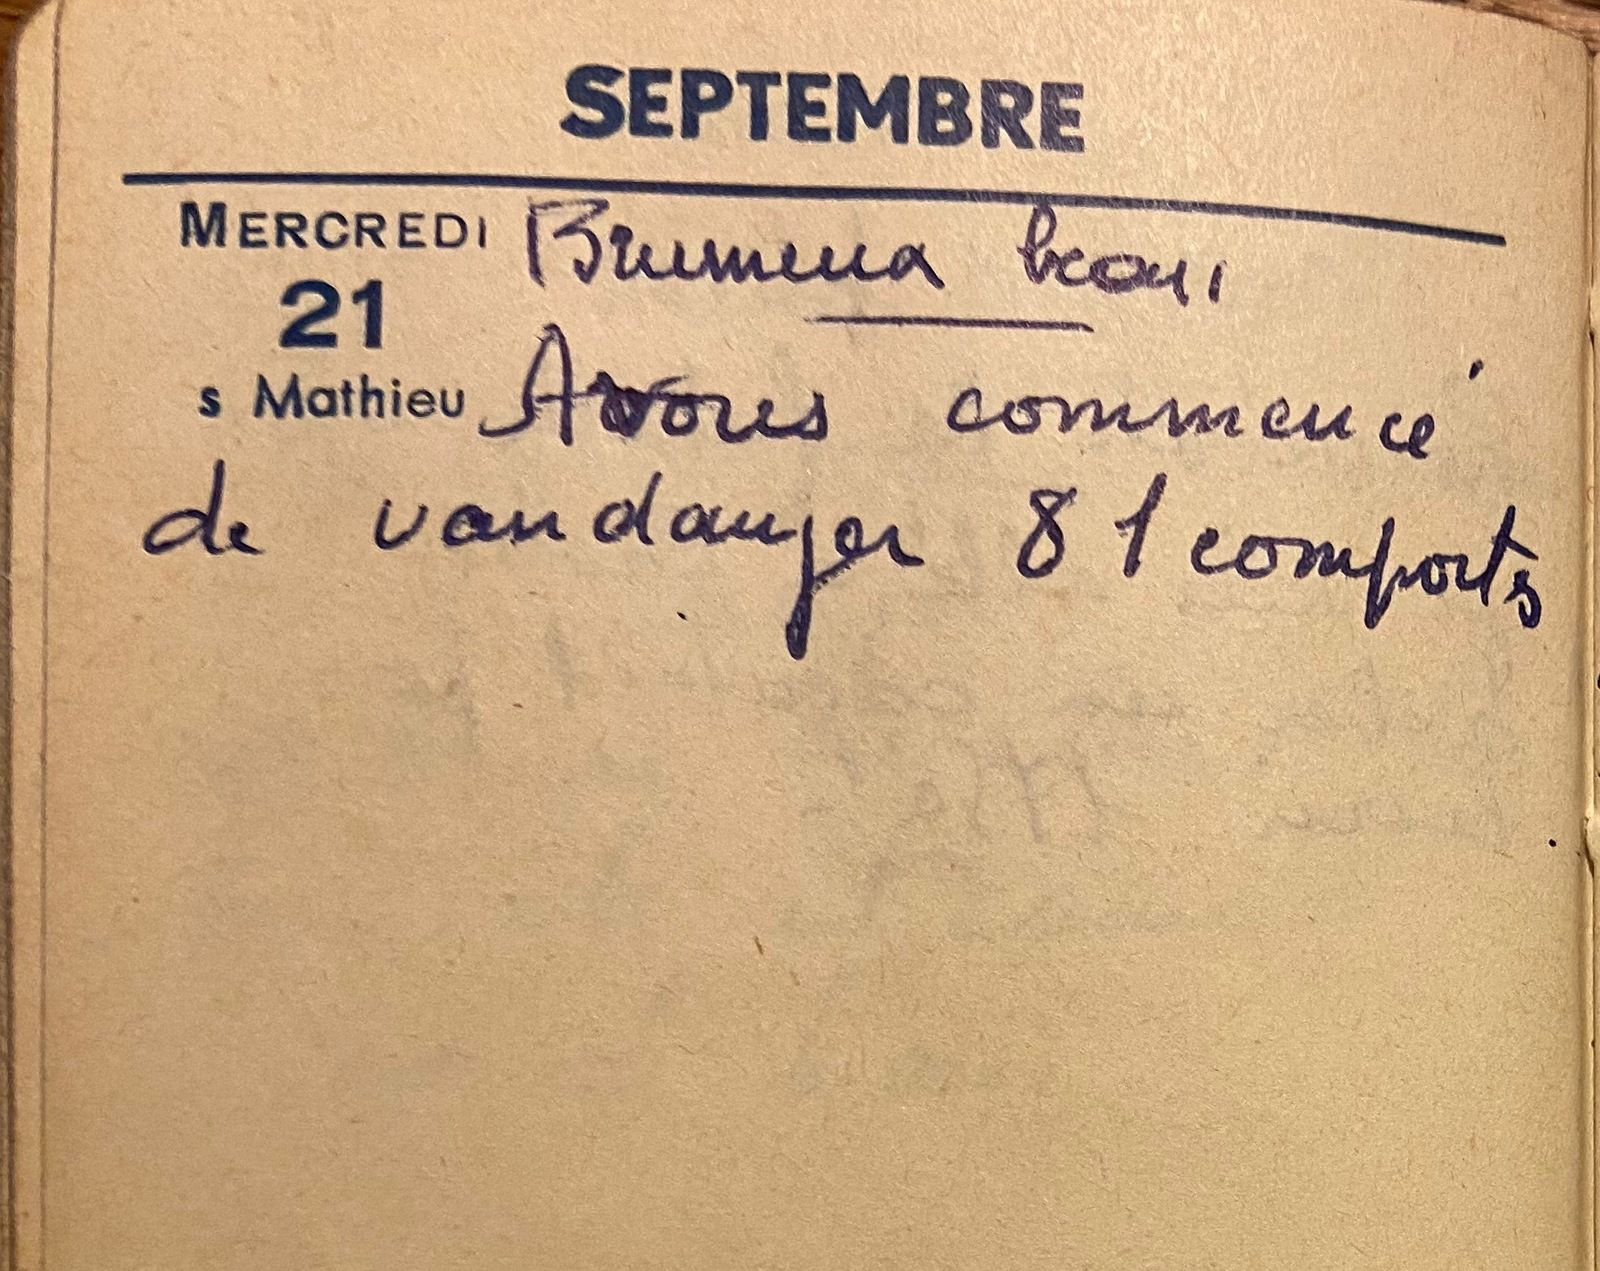 Mercredi 21 septembre 1960 - 81 comportes